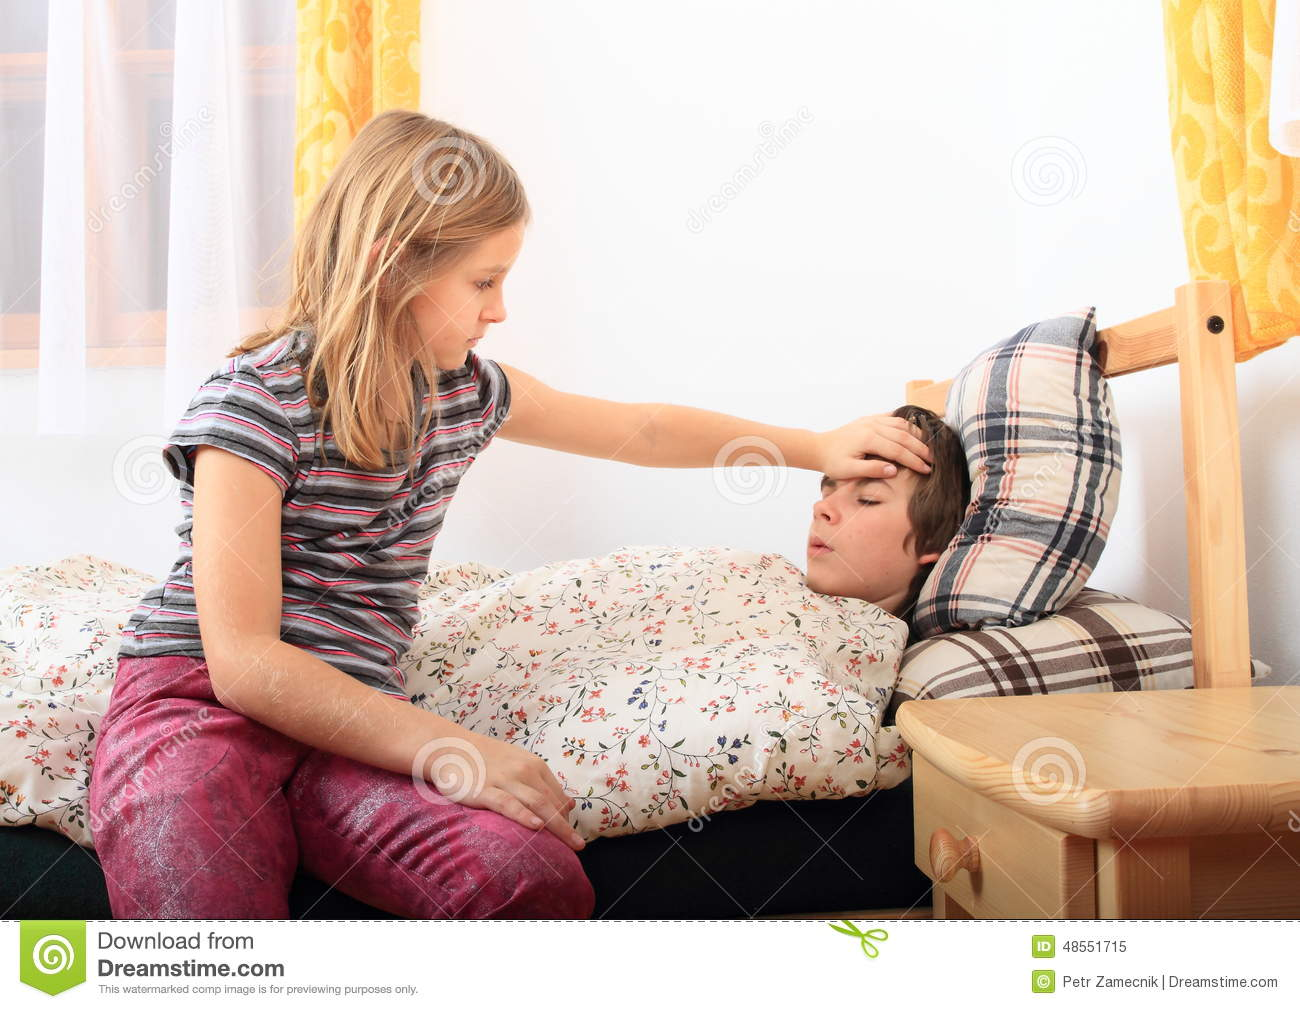 Brother little sister takes care of hot girls wallpaper for Boys and girls in bed